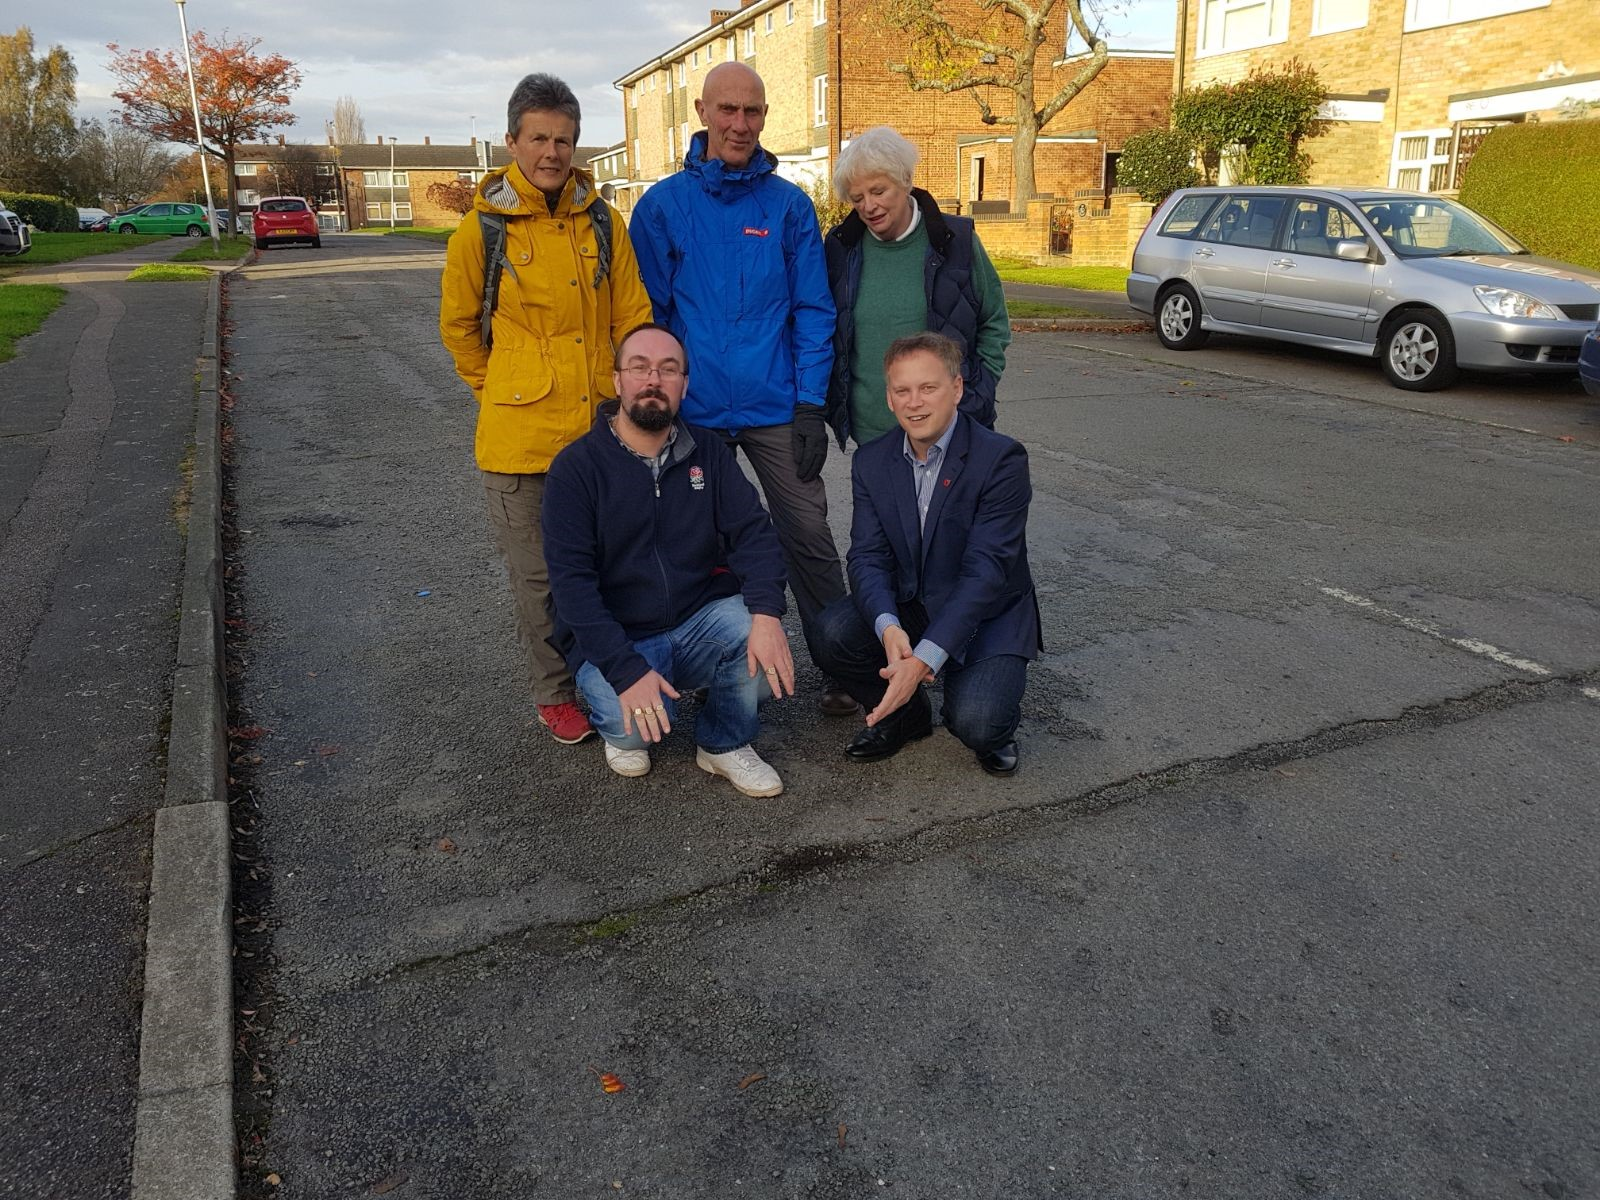 Shapps inspects poor road surface in Hillfield with local residents